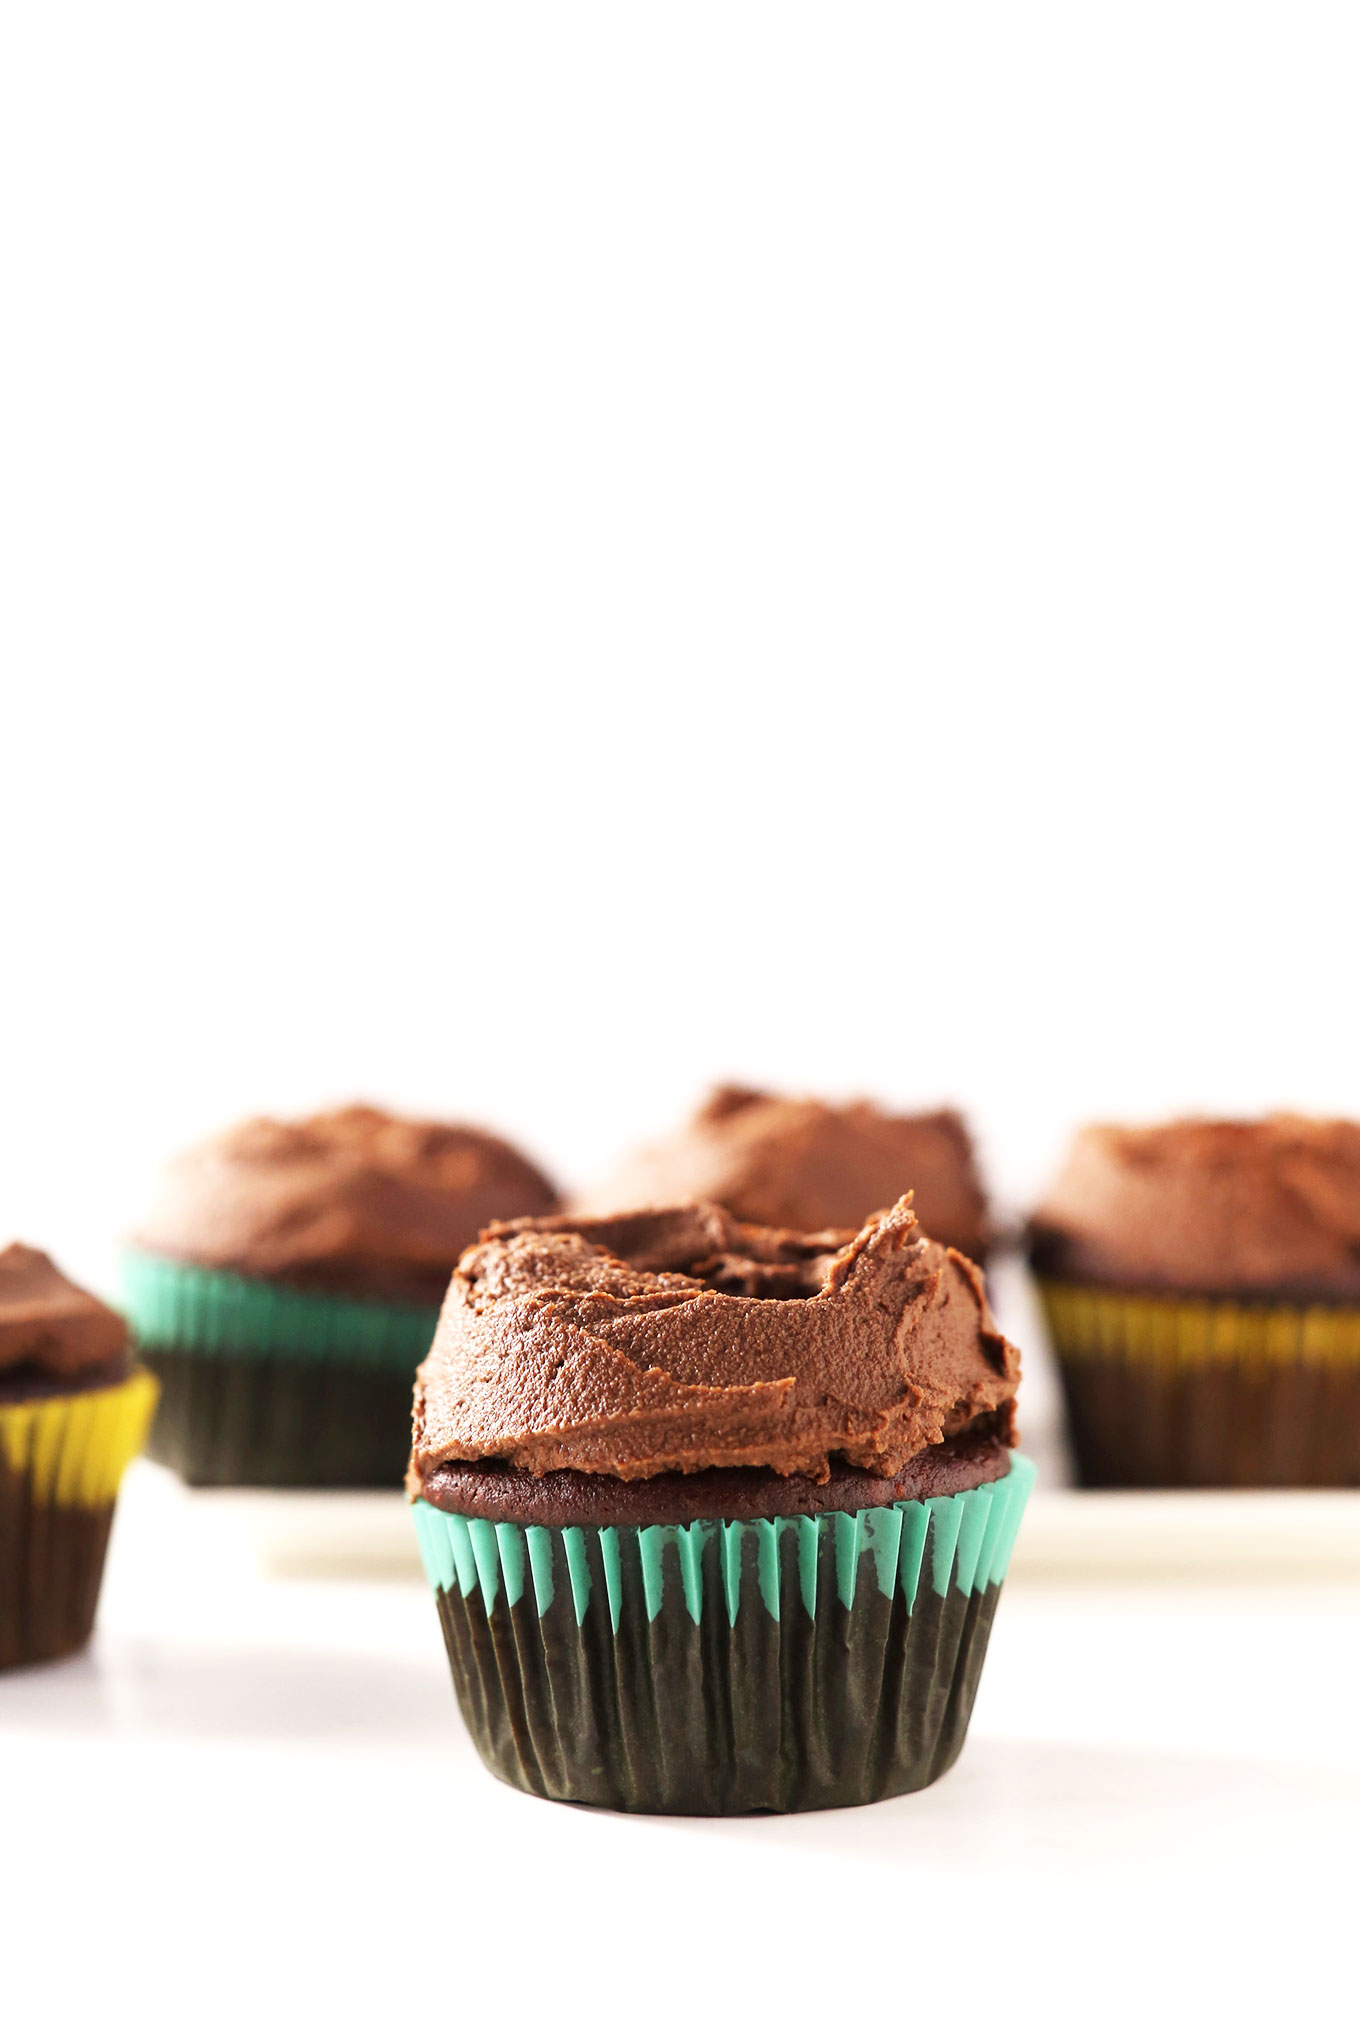 Close up shot of a chocolate cupcake topped with Vegan Chocolate Ganache Frosting